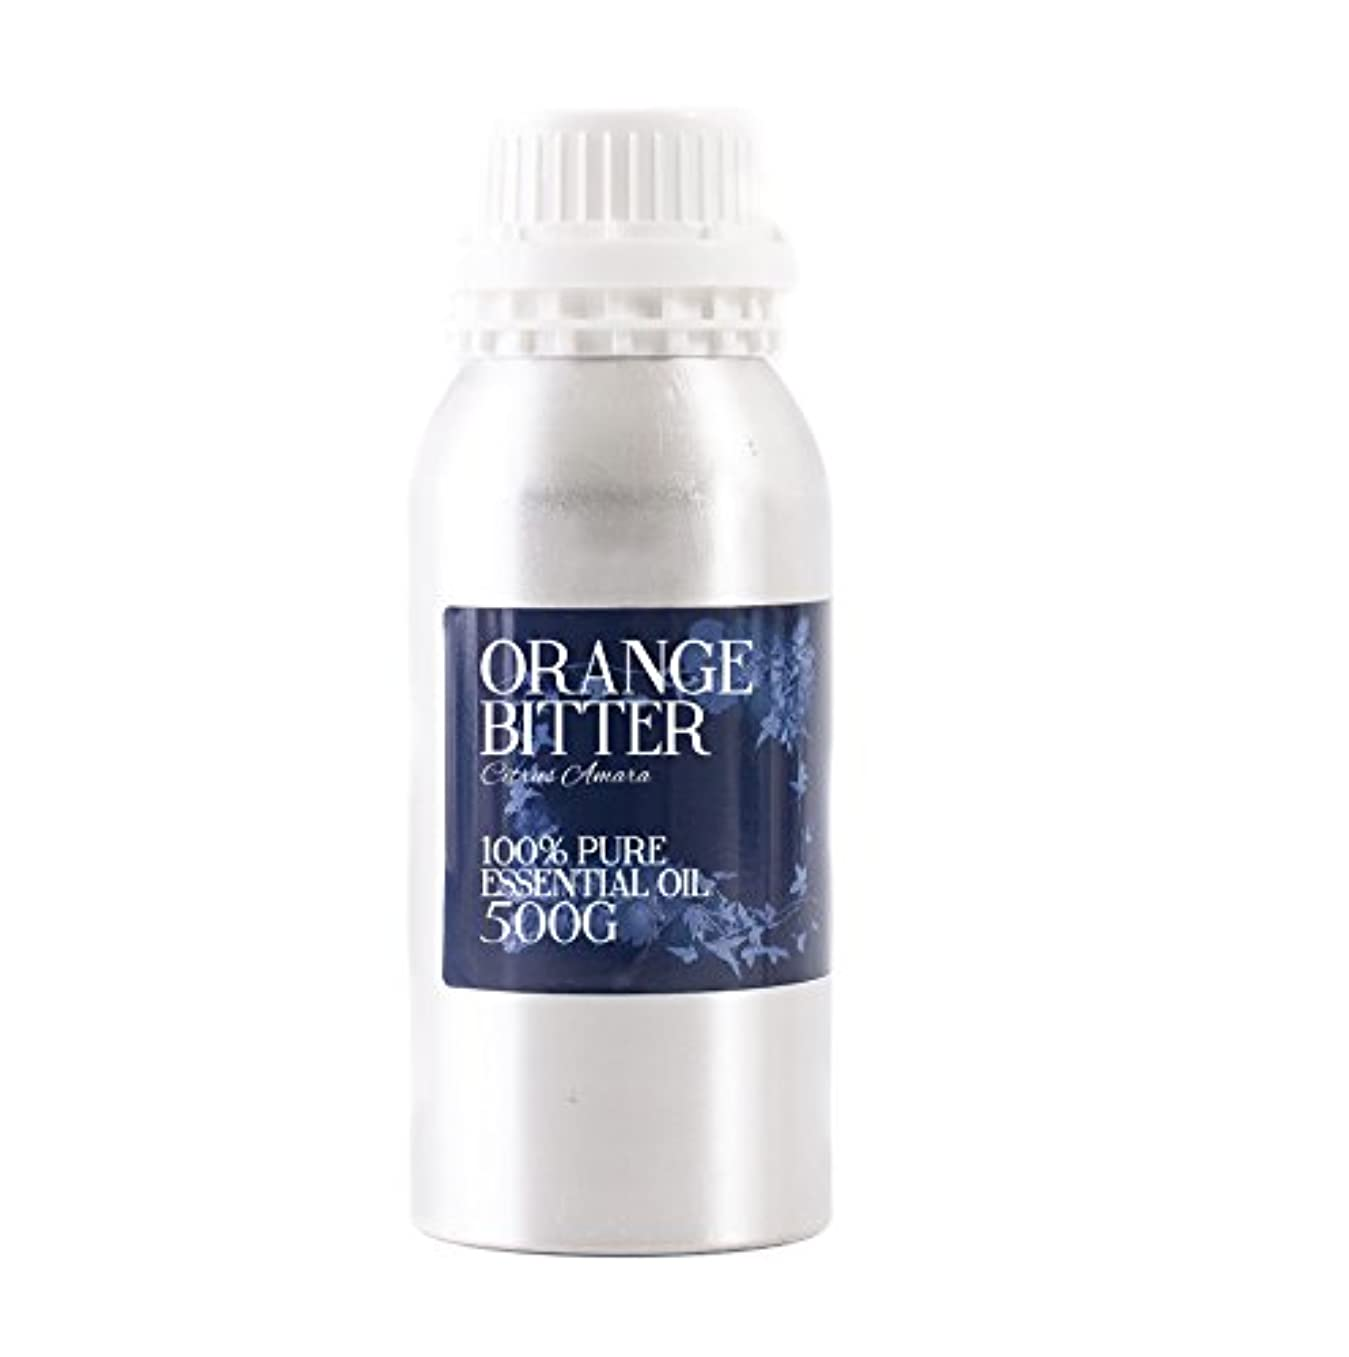 クリーク公爵性差別Mystic Moments | Orange Bitter Essential Oil - 500g - 100% Pure